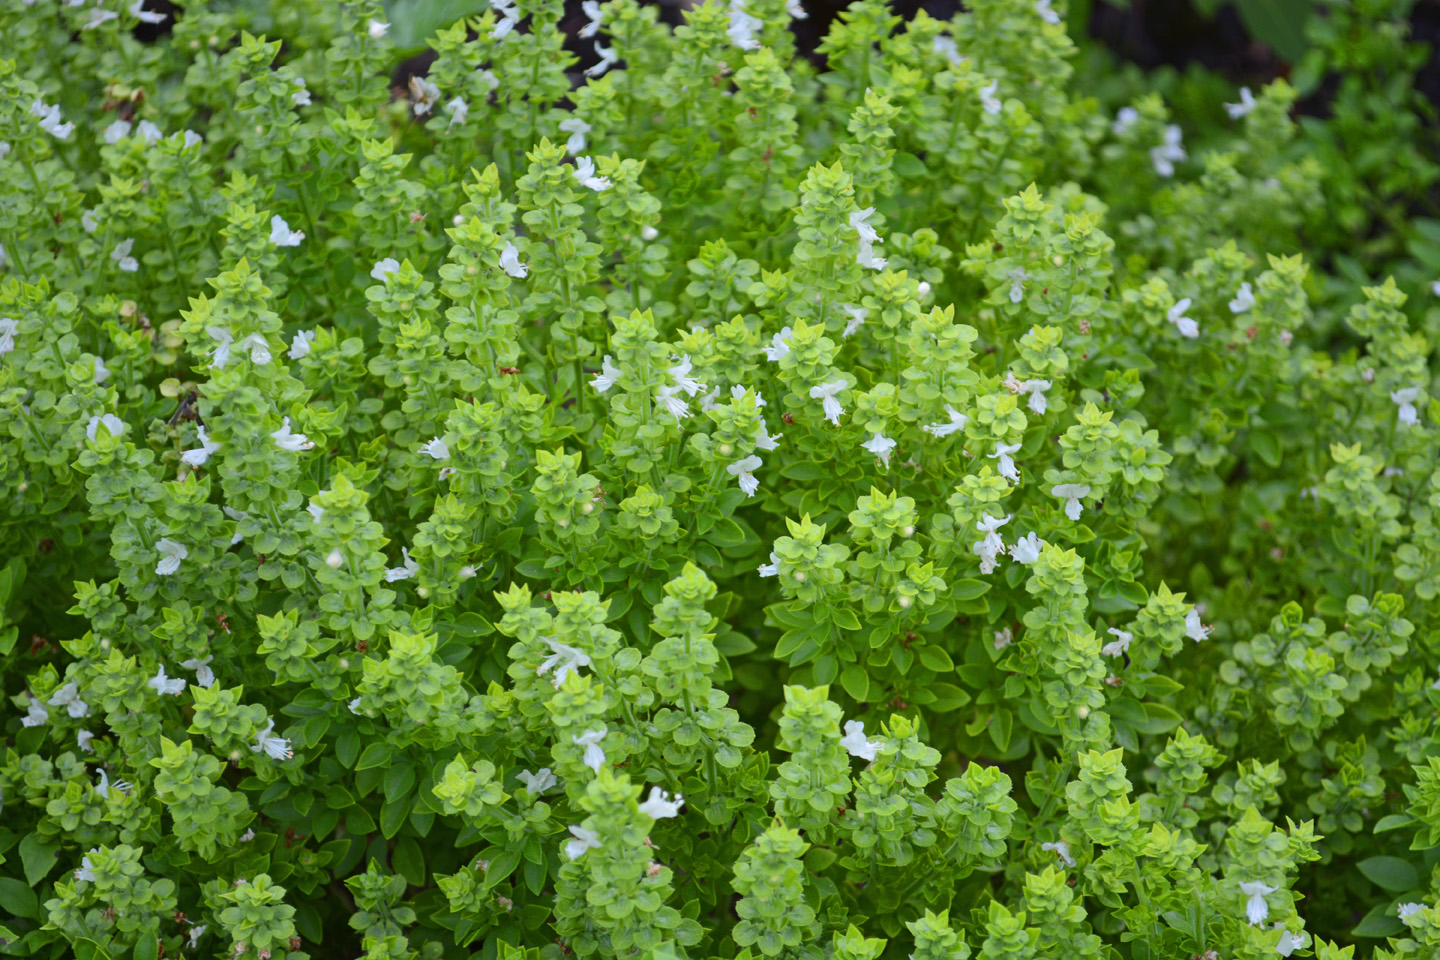 Globe Basil Is A Rabbit Resistant Plant In The Garden Shawna Coronado